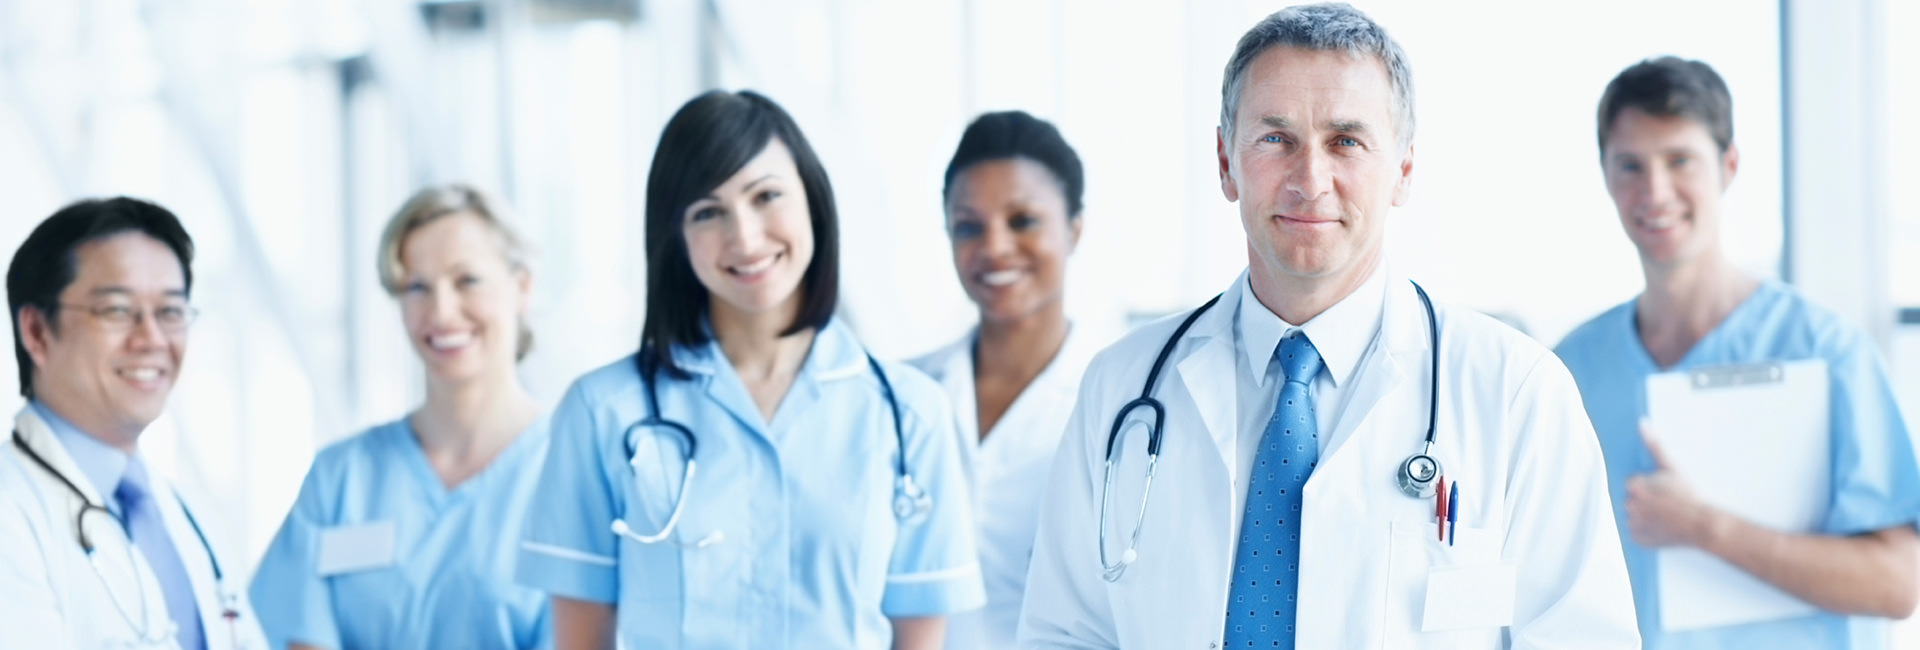 essay on healthcare Read this business essay and over 88,000 other research documents health care 1 what conventional economic principles apply in the health care environment.